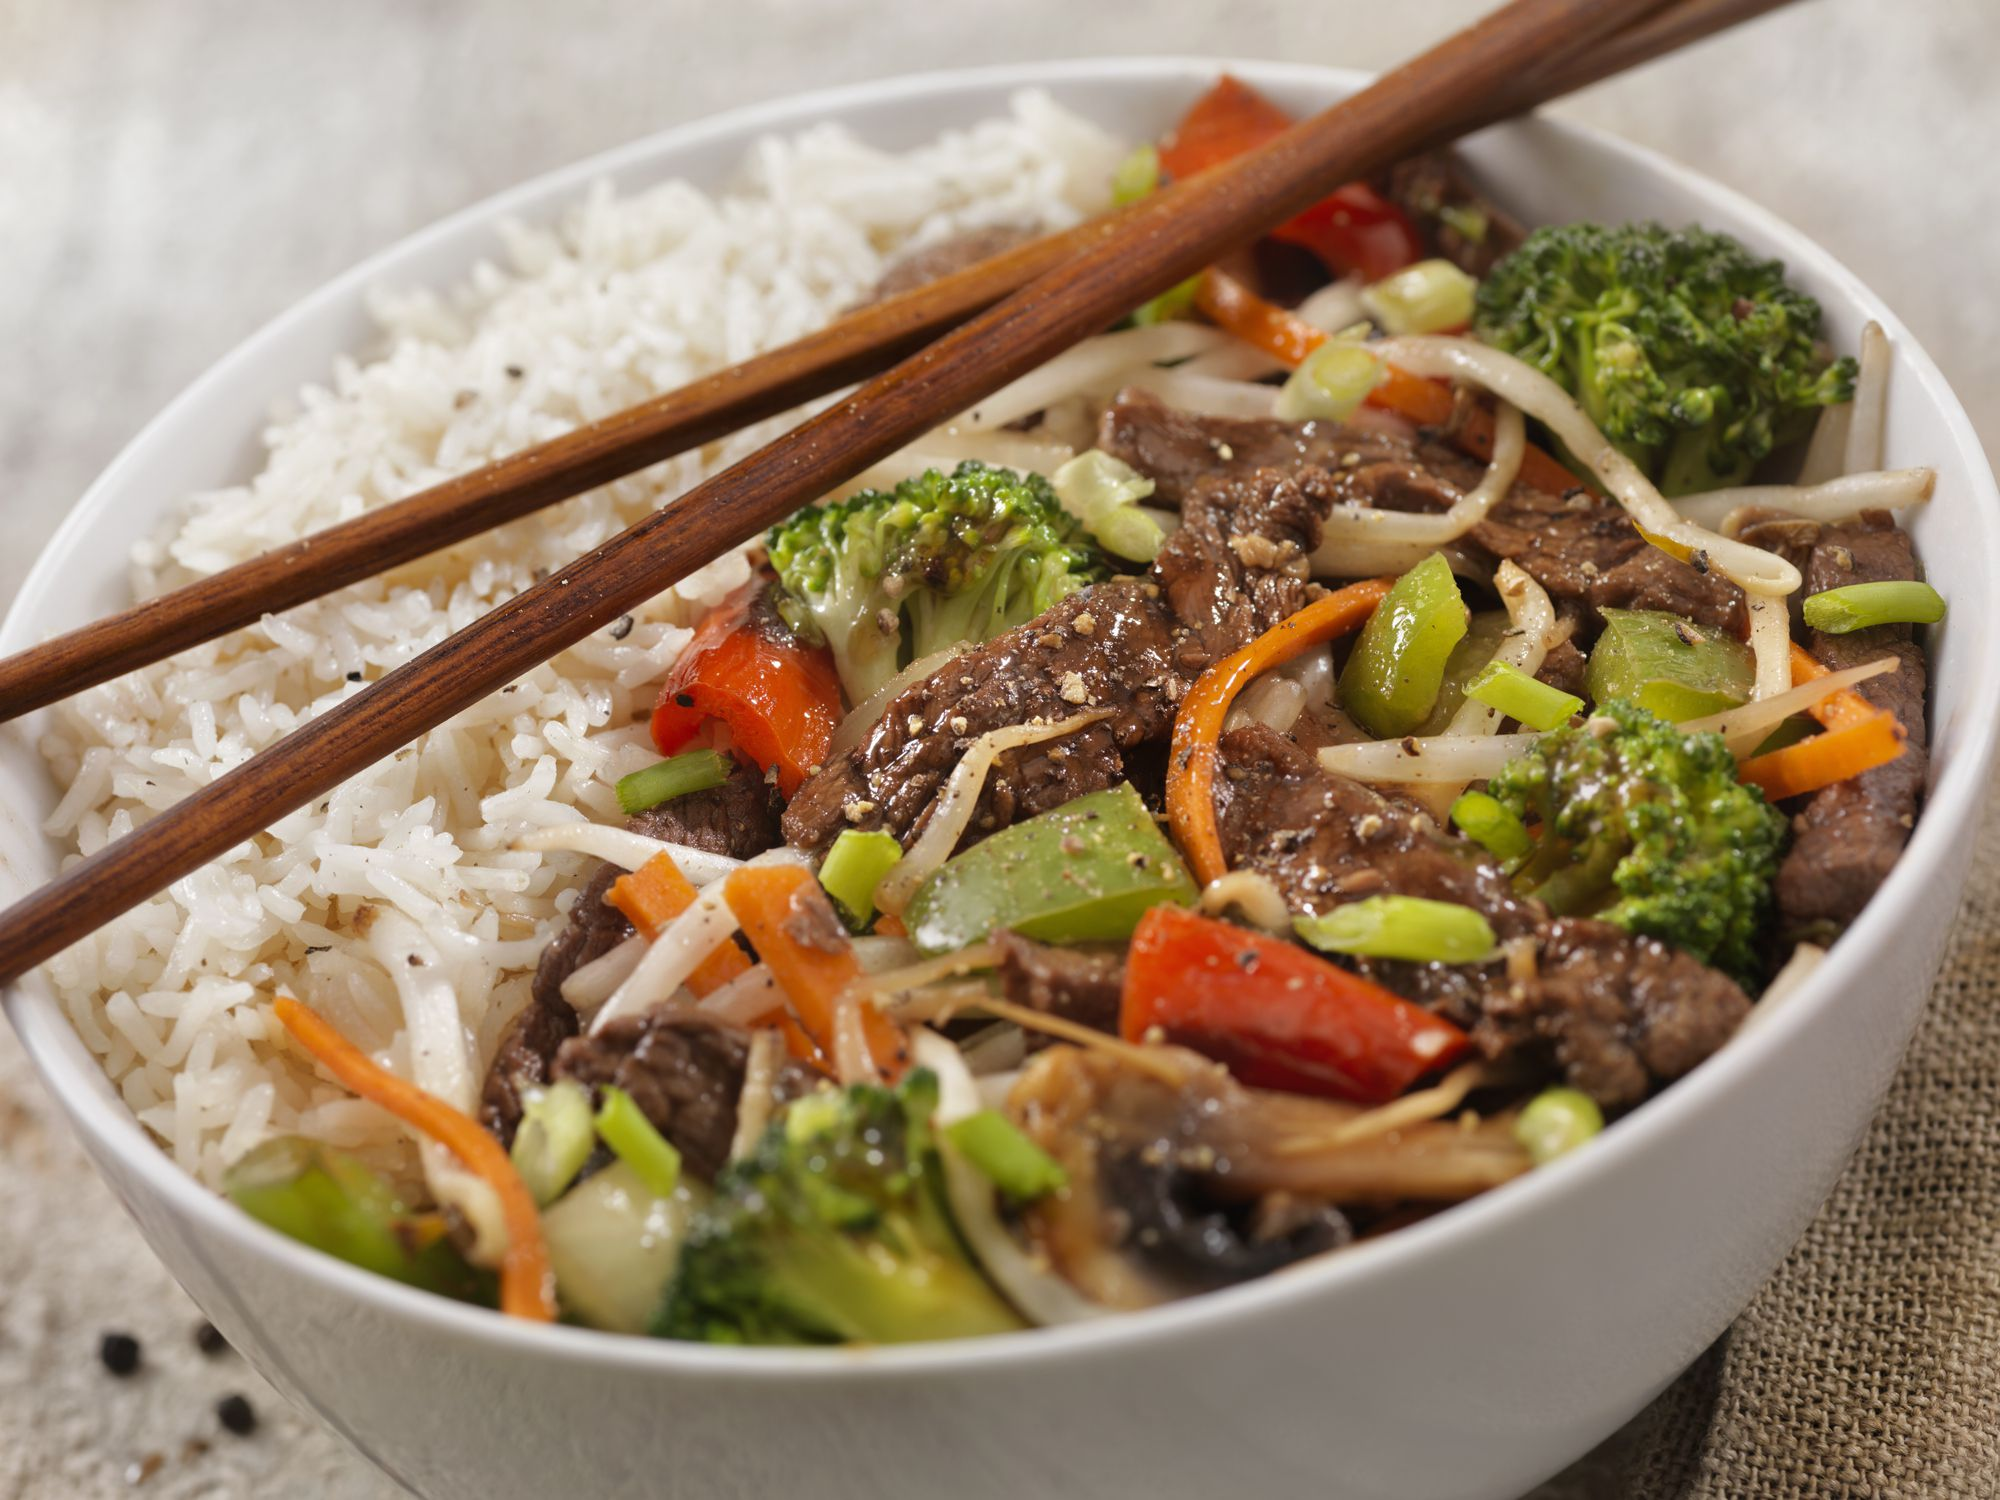 9 Of The Best Beef Stir Fry Recipes